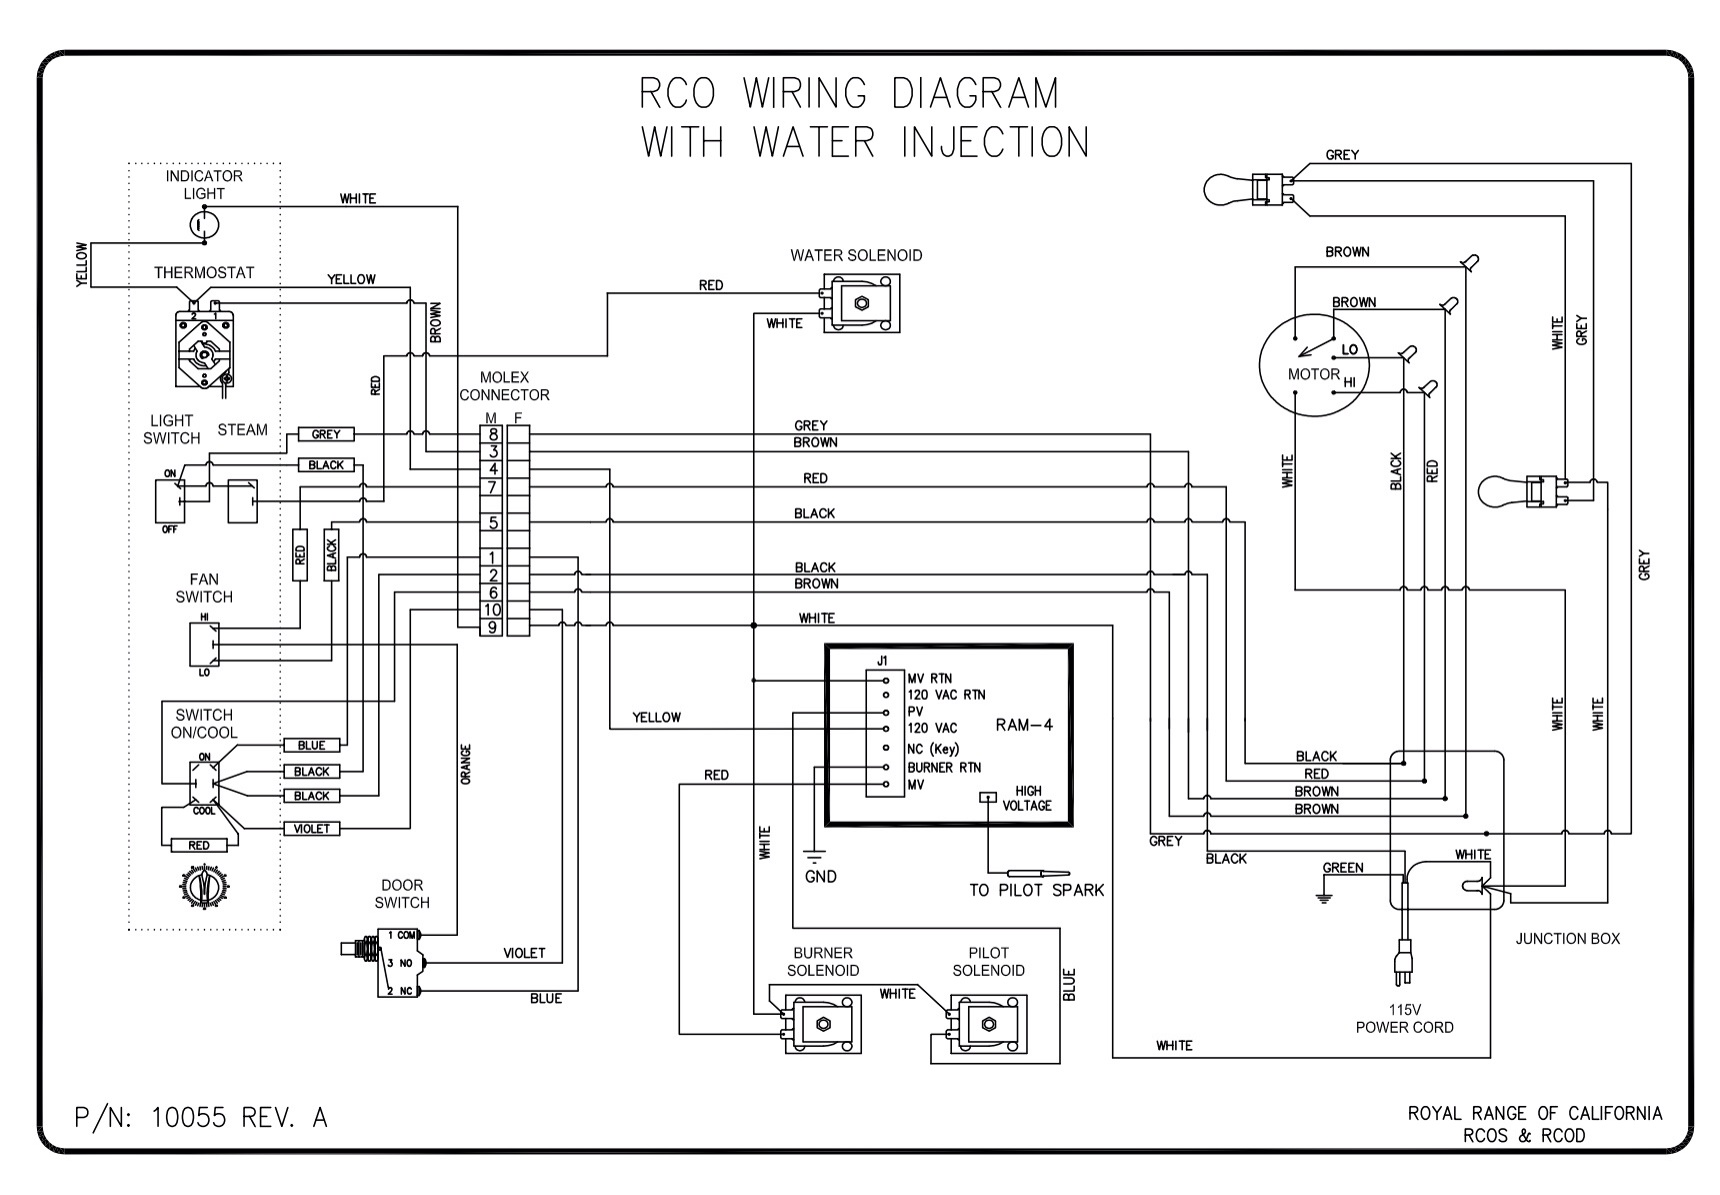 RCO with water inj?resize=665%2C462&ssl=1 oven wiring instructions wiring diagram  at gsmx.co